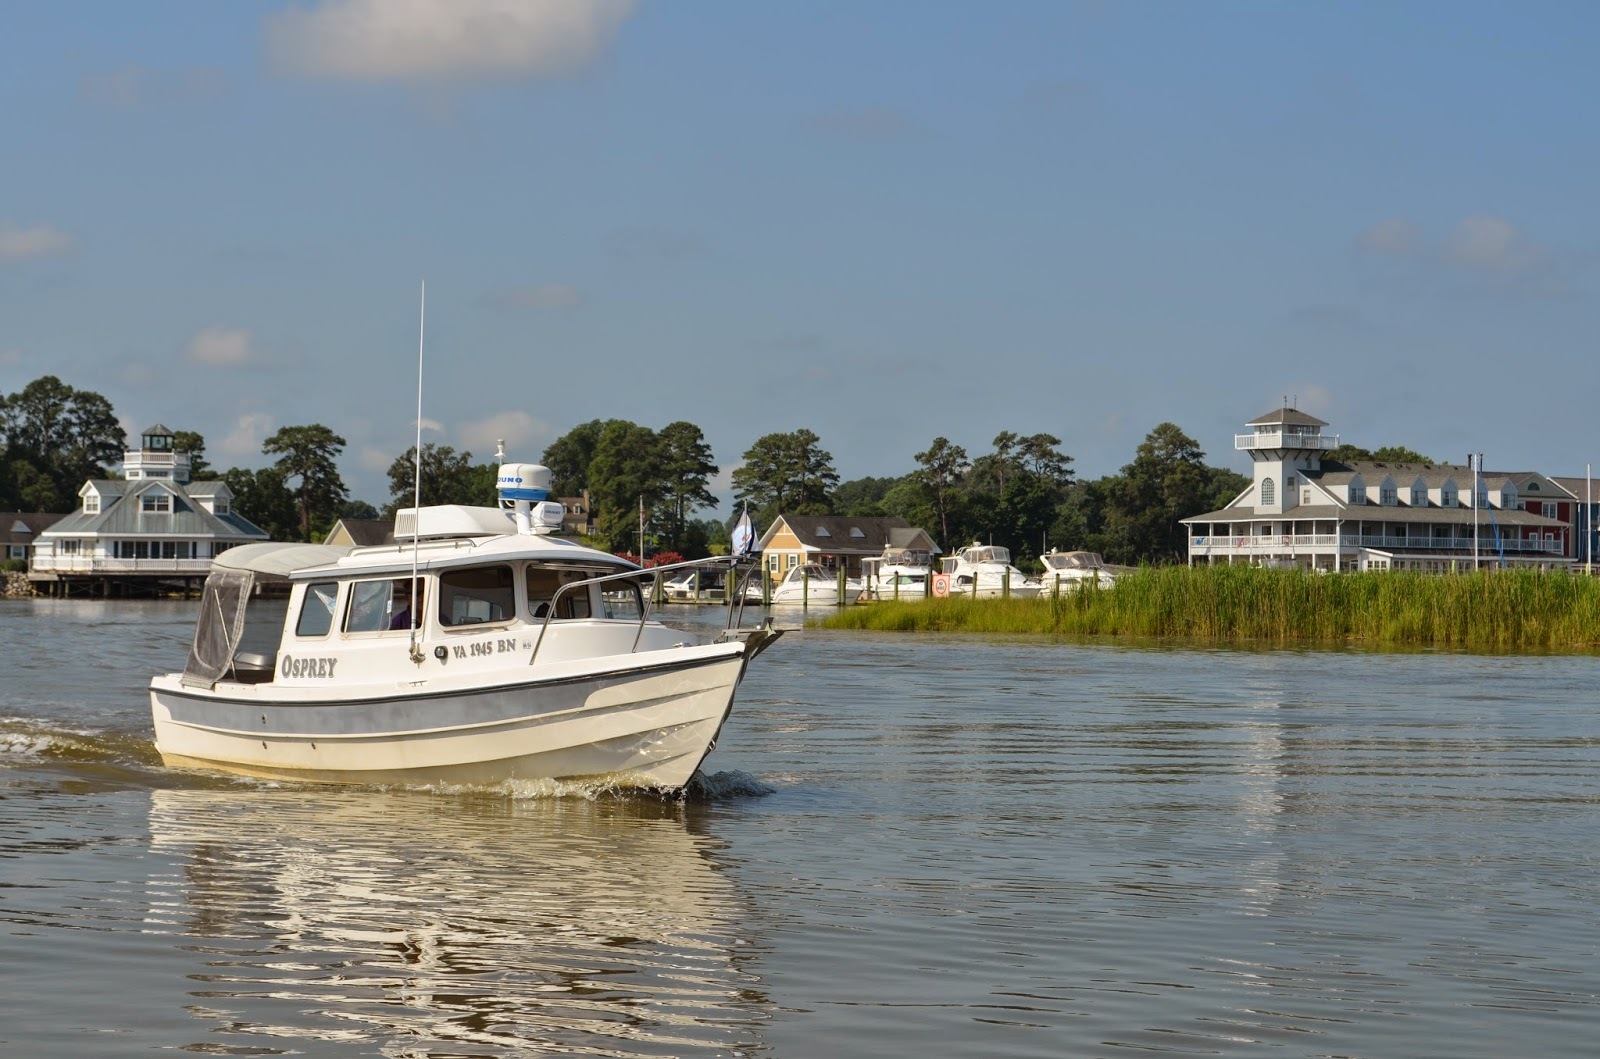 jamestown and river s rest marina